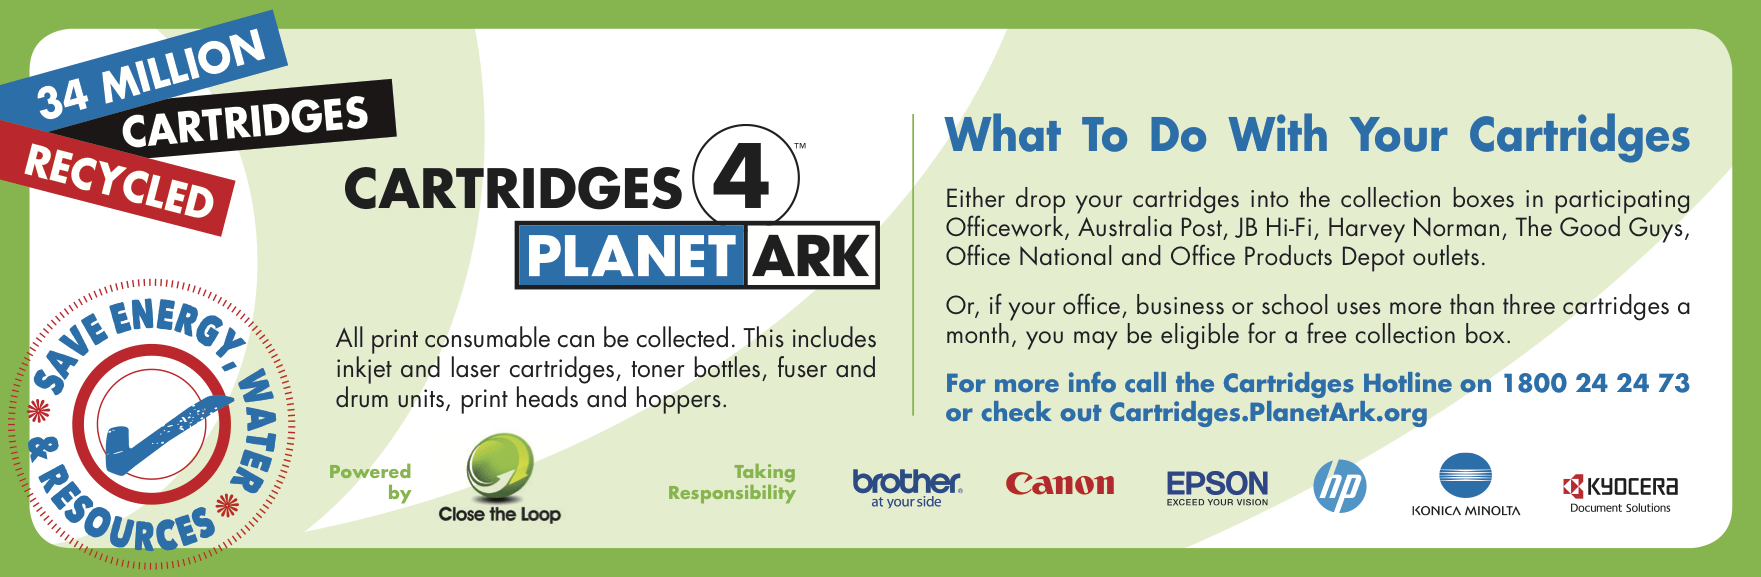 Planet Ark recycled cartridges campaign